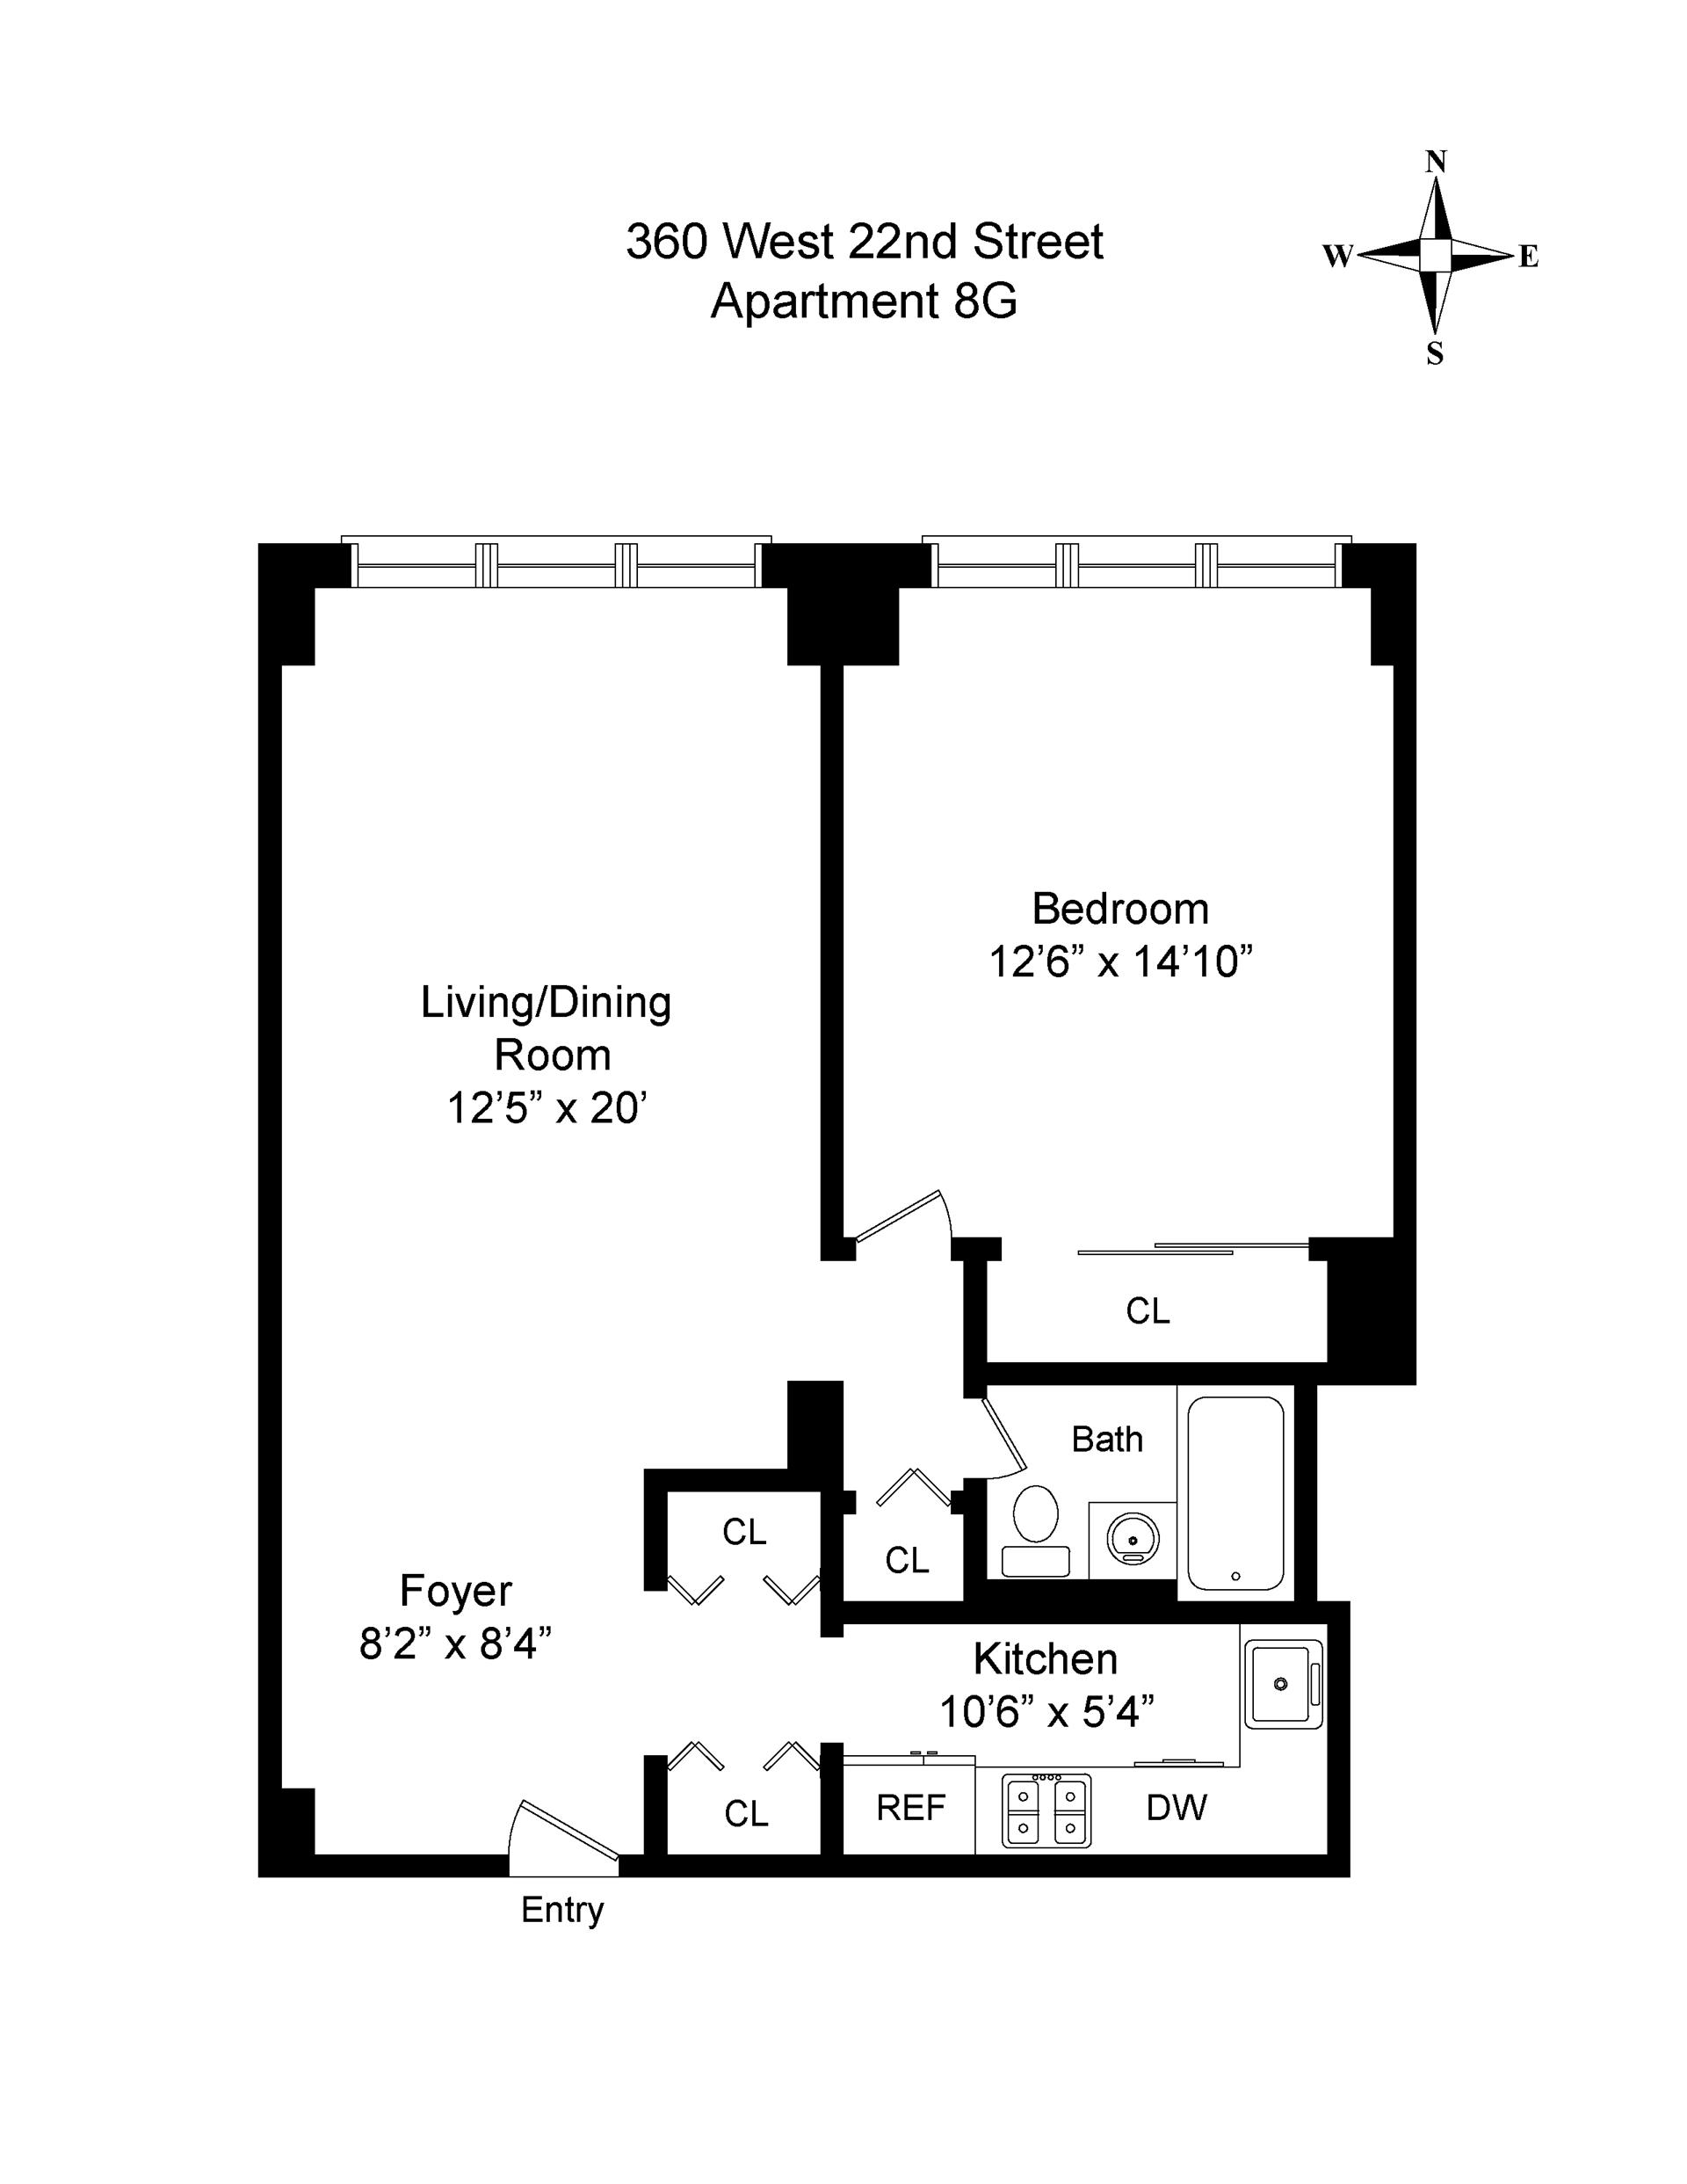 Floor plan of London Towne House, 360 West 22nd St, 8G - Chelsea, New York